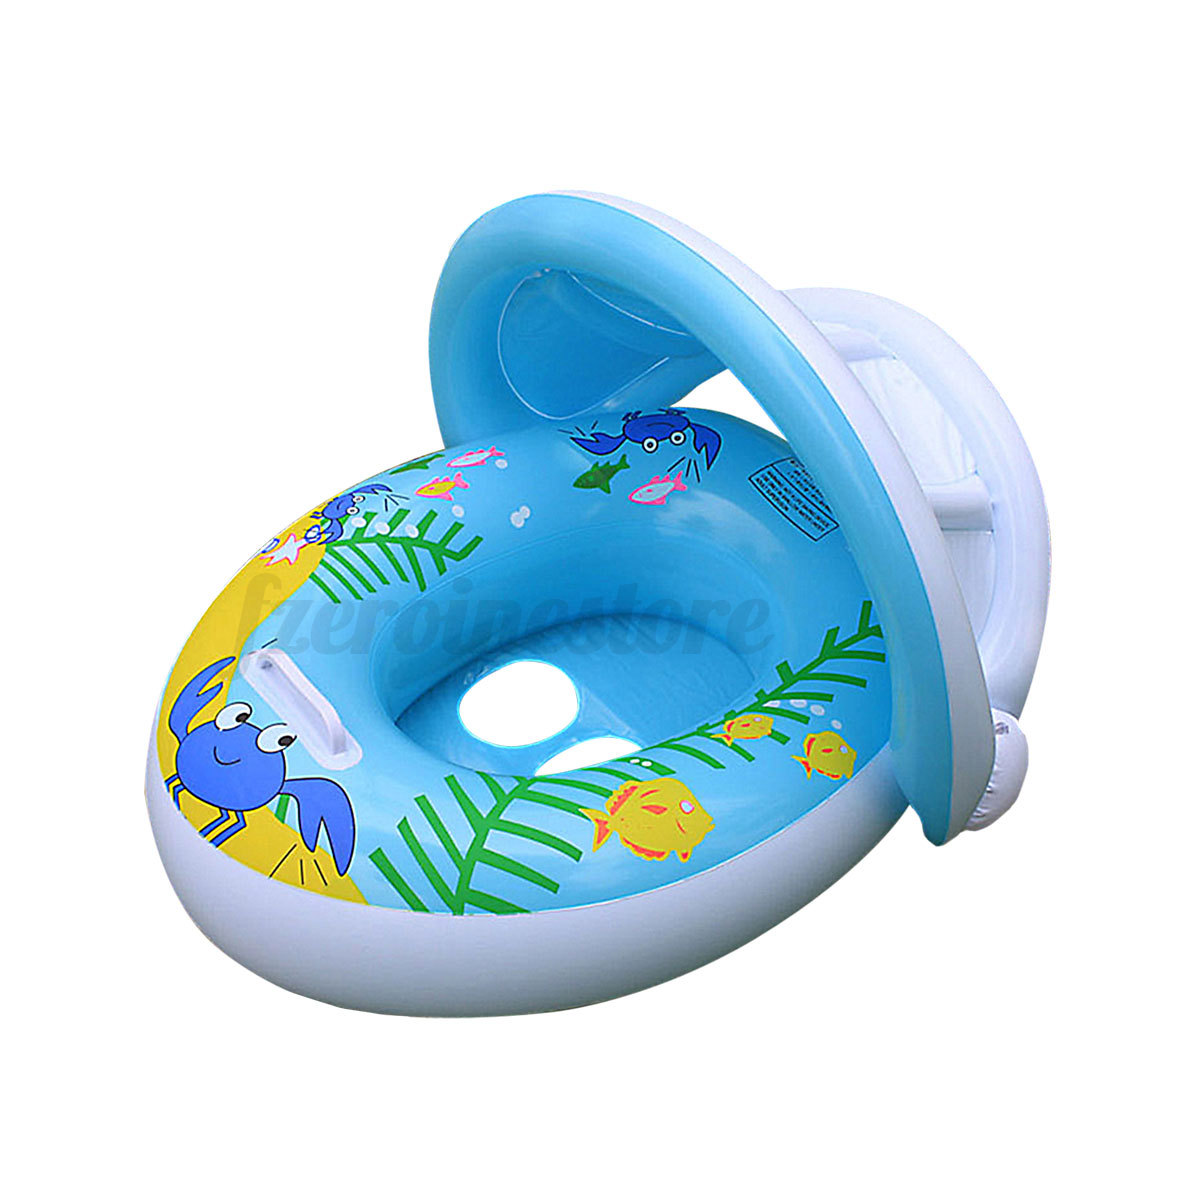 Inflatable Baby Ring Float Seat Boat Adjustable Sunshade